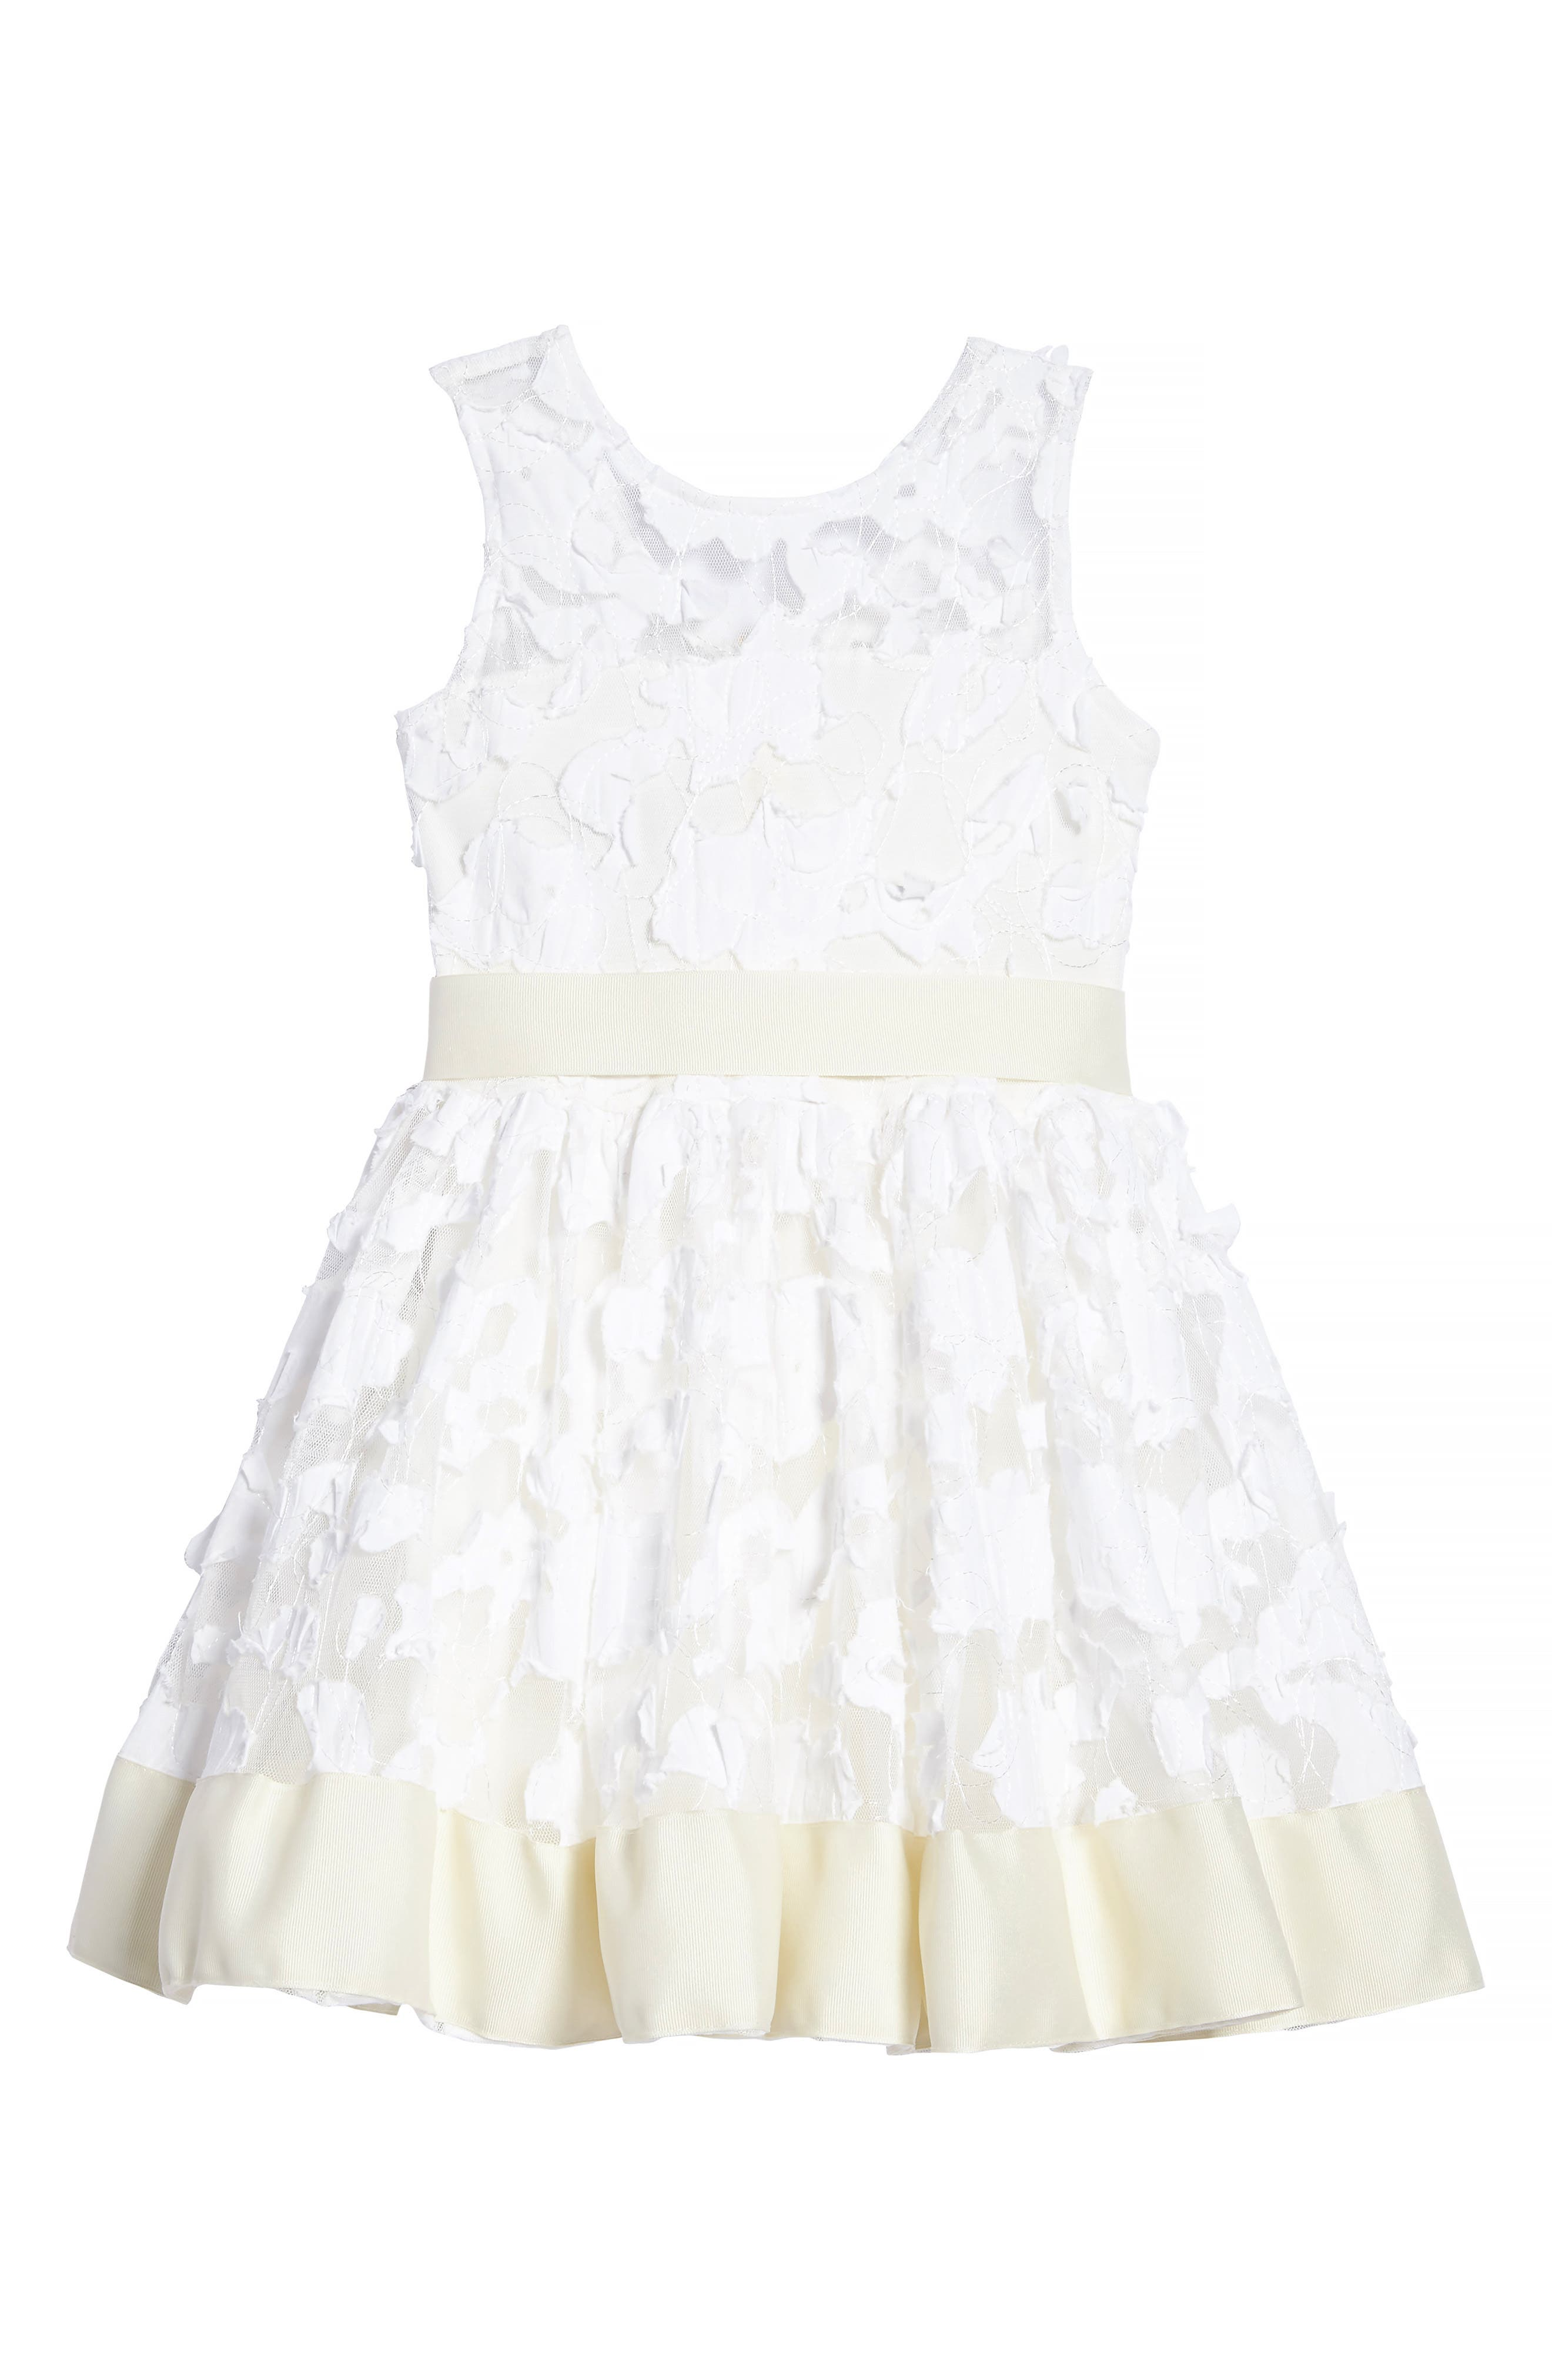 'Pretty in Ivory' Party Dress,                         Main,                         color, 900